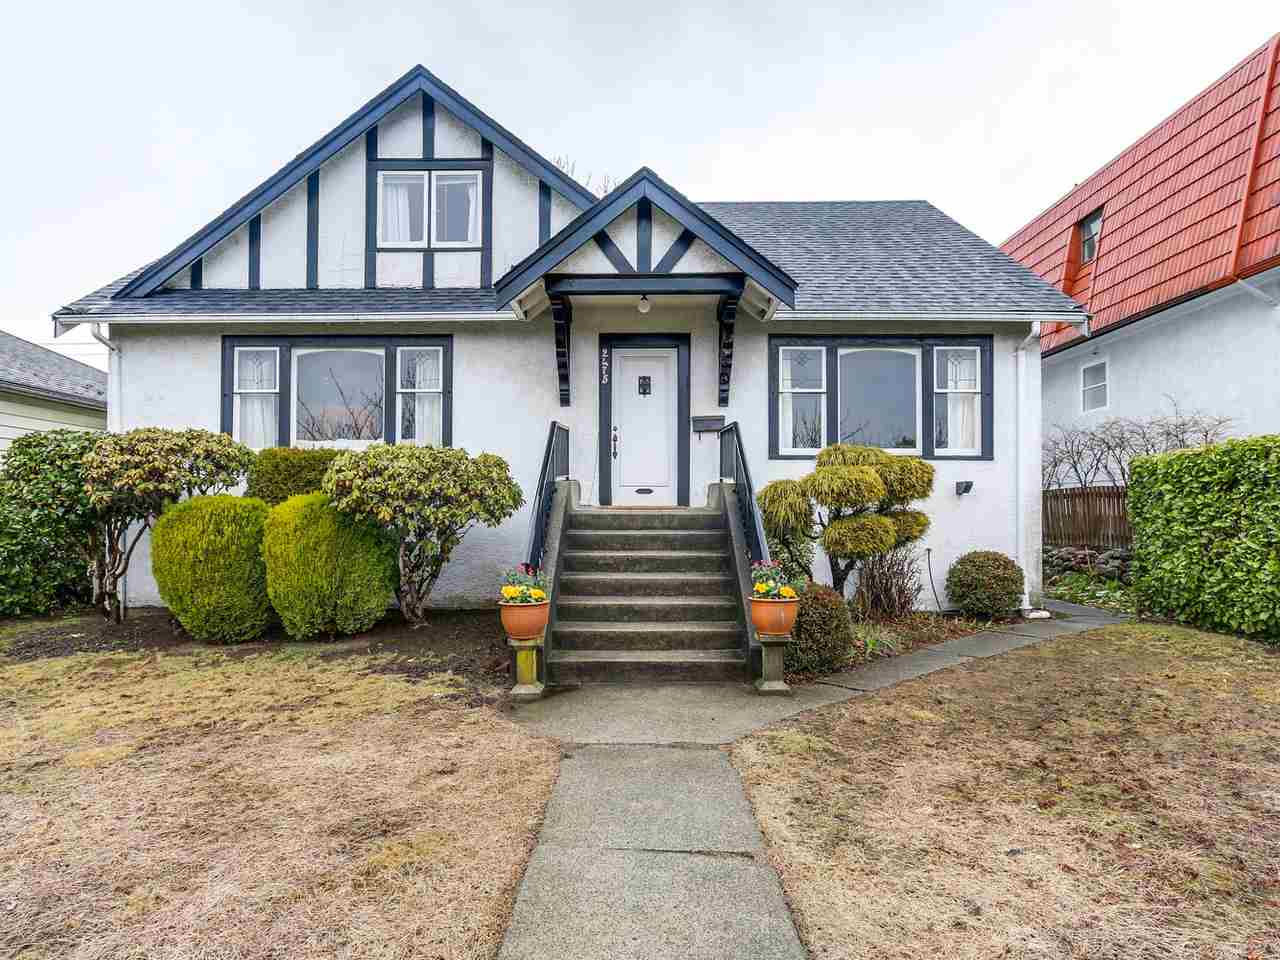 Main Photo: 2475 W 16TH Avenue in Vancouver: Kitsilano House for sale (Vancouver West)  : MLS(r) # R2143783